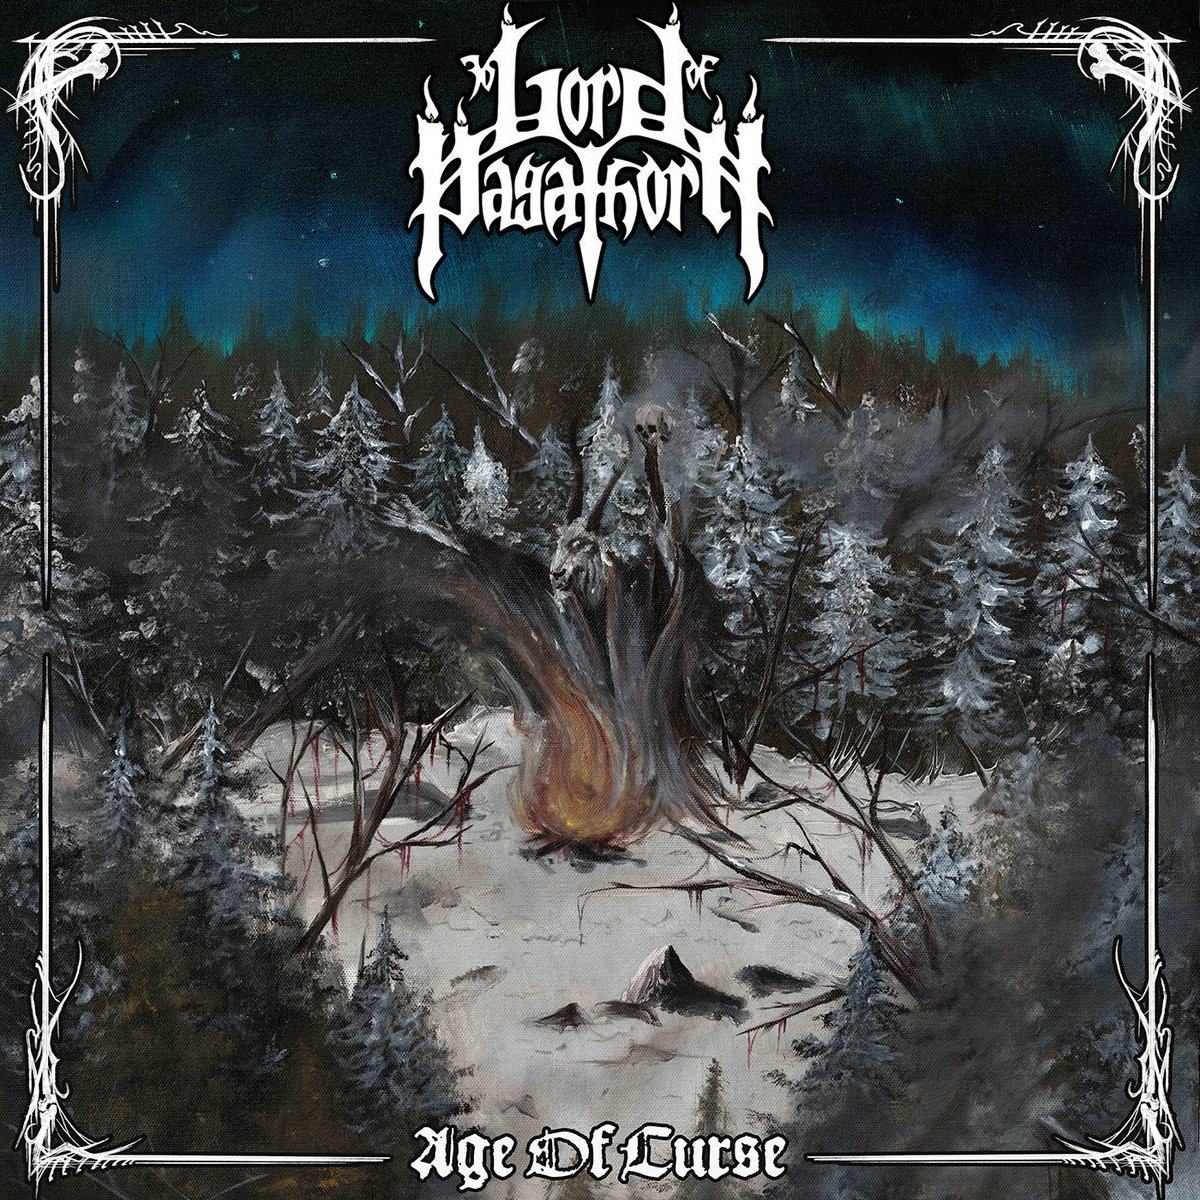 Lord of Pagathorn - Age of Curse (2021) [FLAC] Download